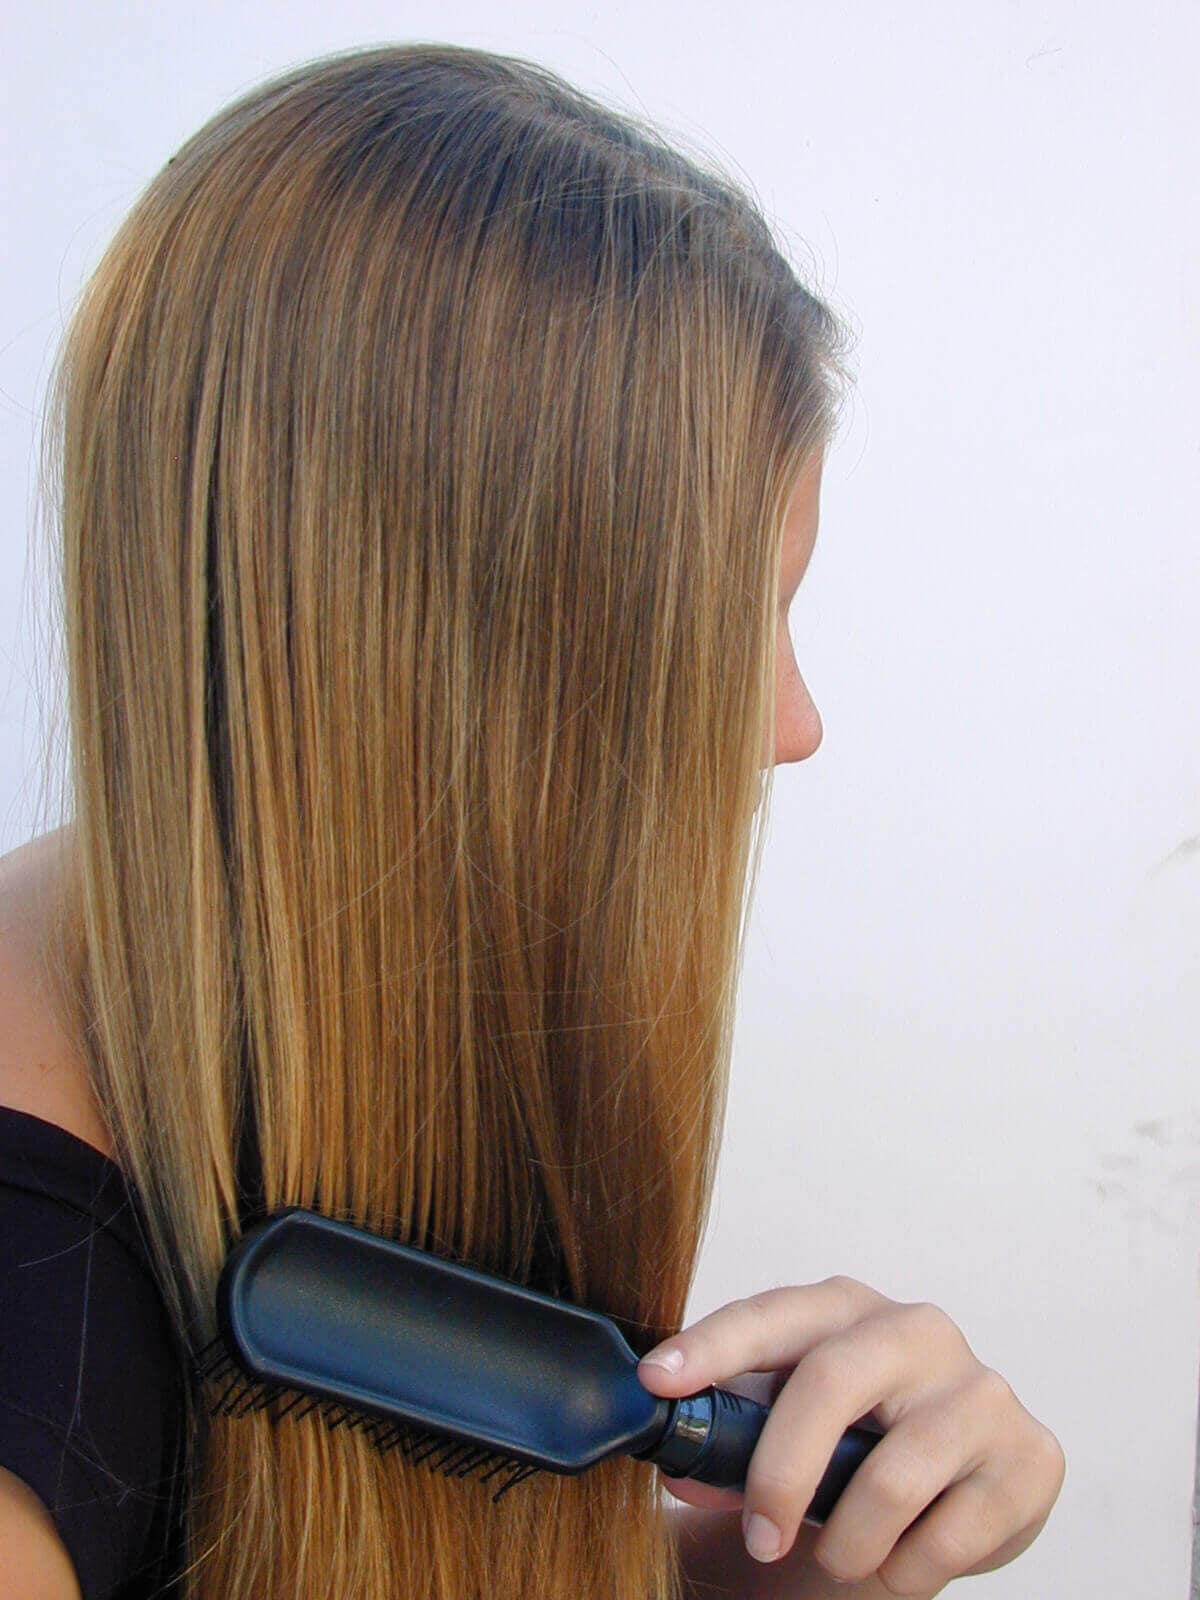 Light brown haired woman brushing her hair